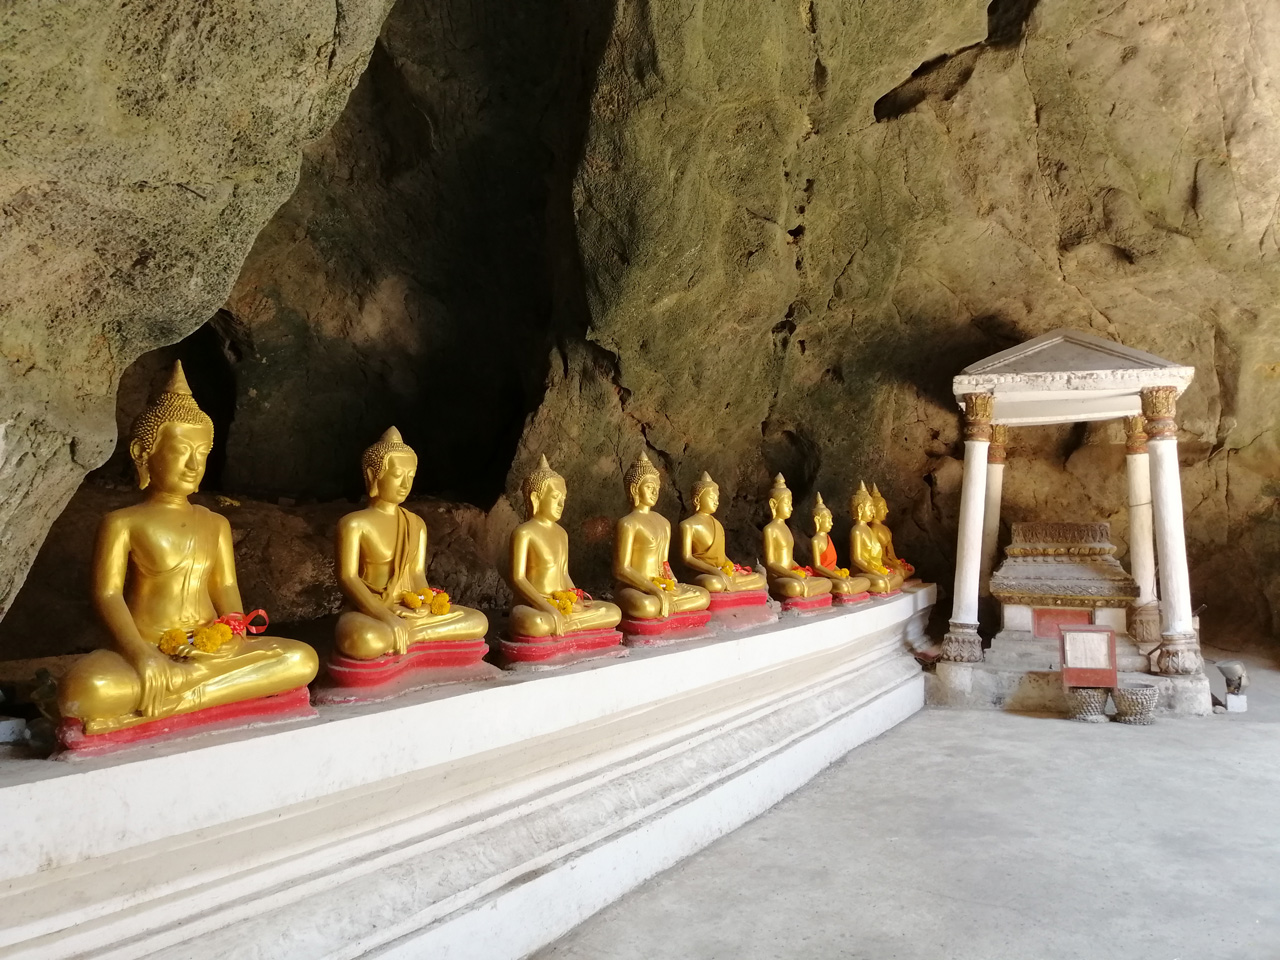 Khao Luang Cave Temple in Hua Hin